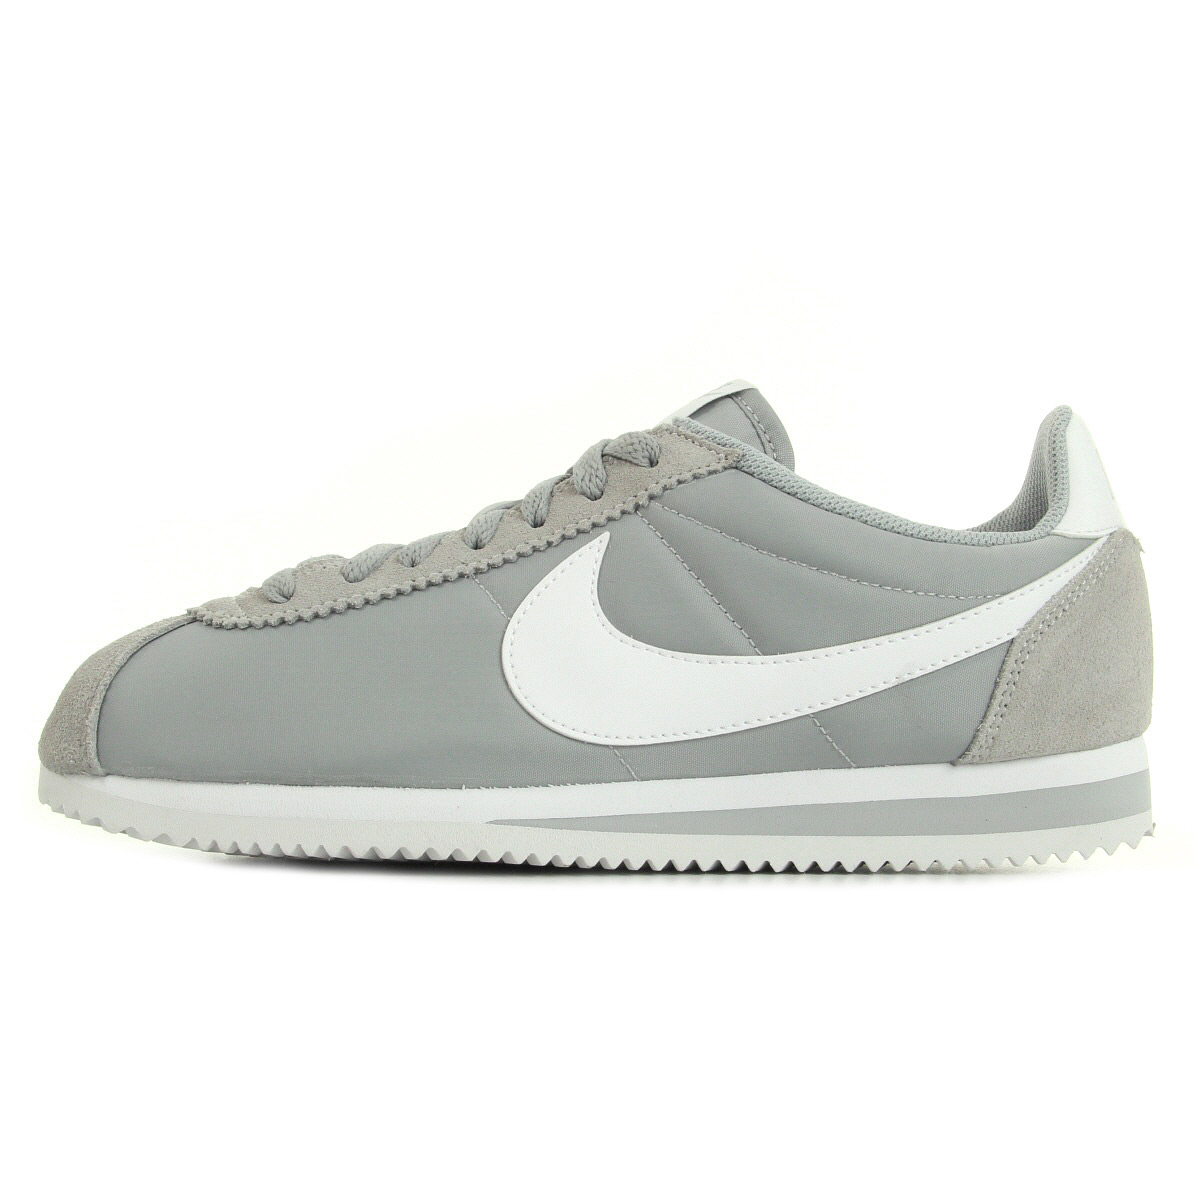 Nike Classic Cortez Nylon 807472010, Baskets mode